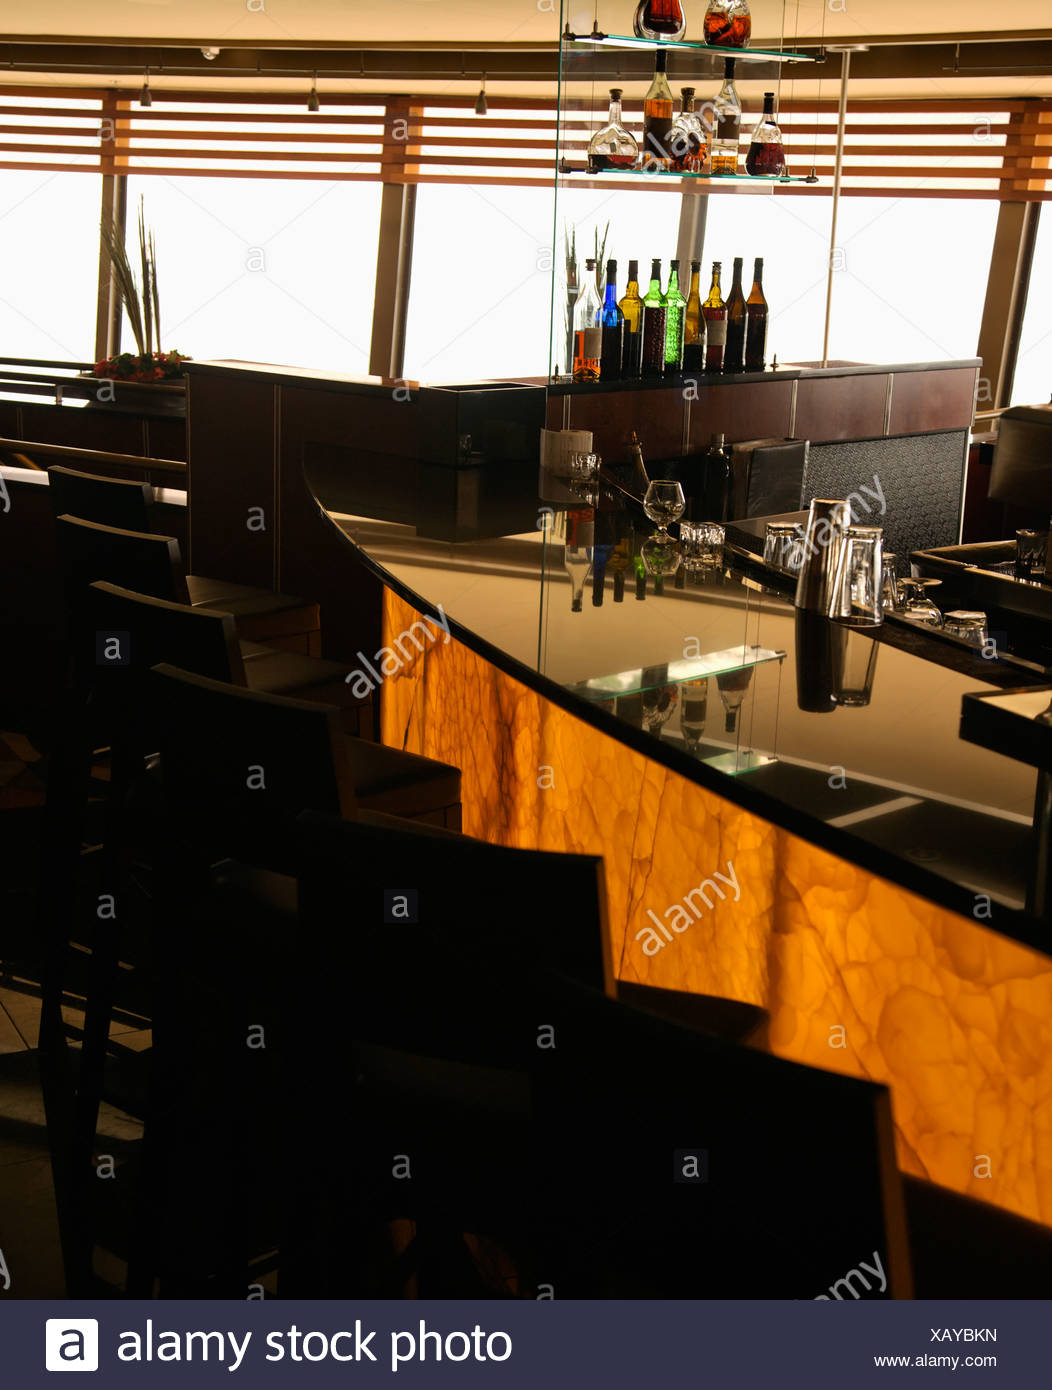 empty bar in restaurant with row of barstools and windows in